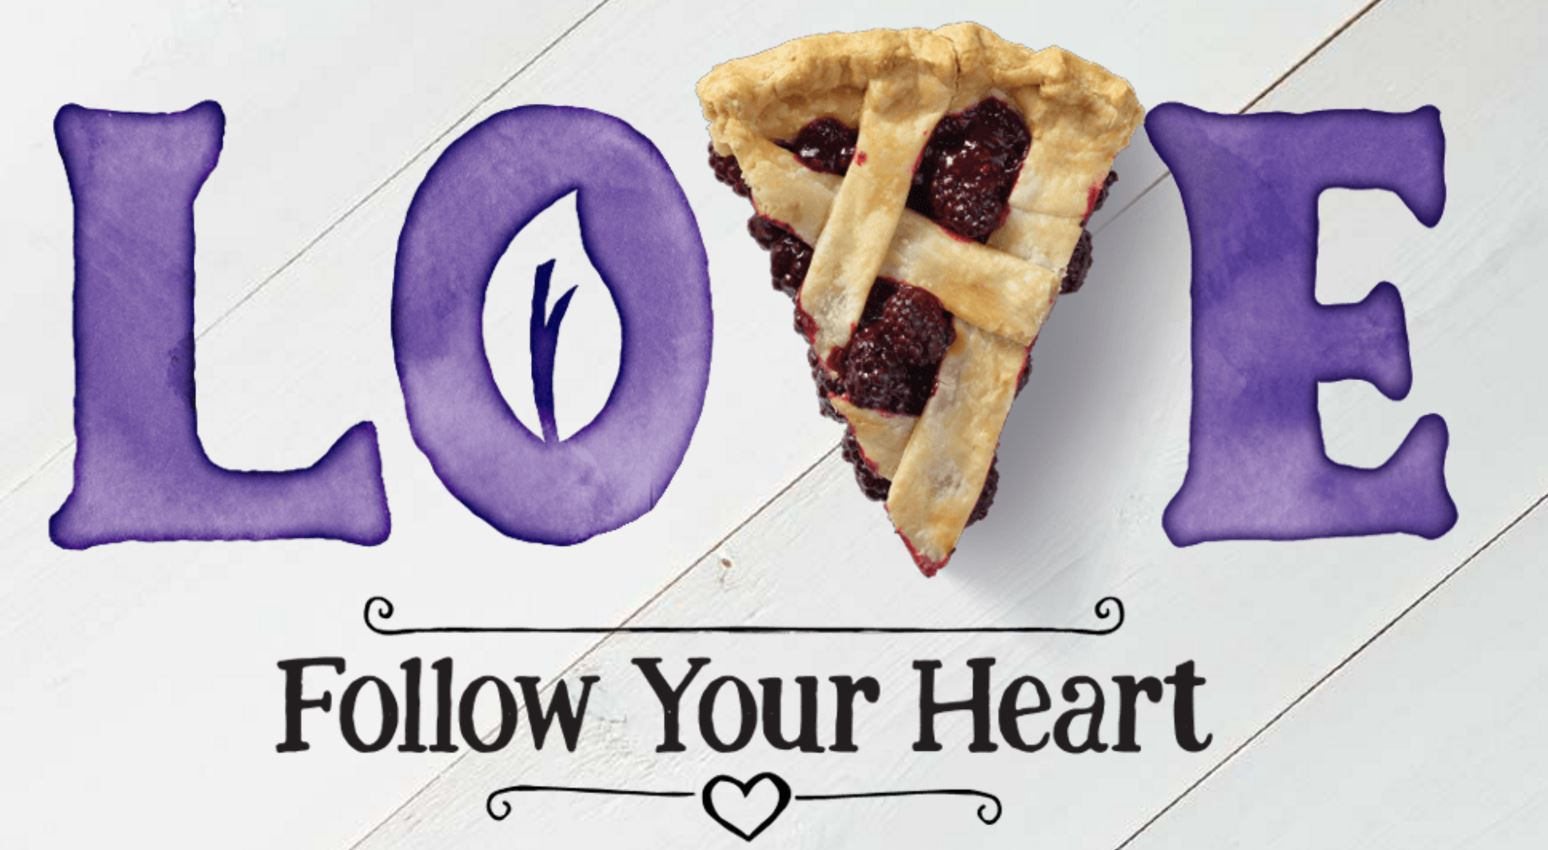 Go Follow Your Heart To Yogurtland - New Flavors Based On Home-made Recipes